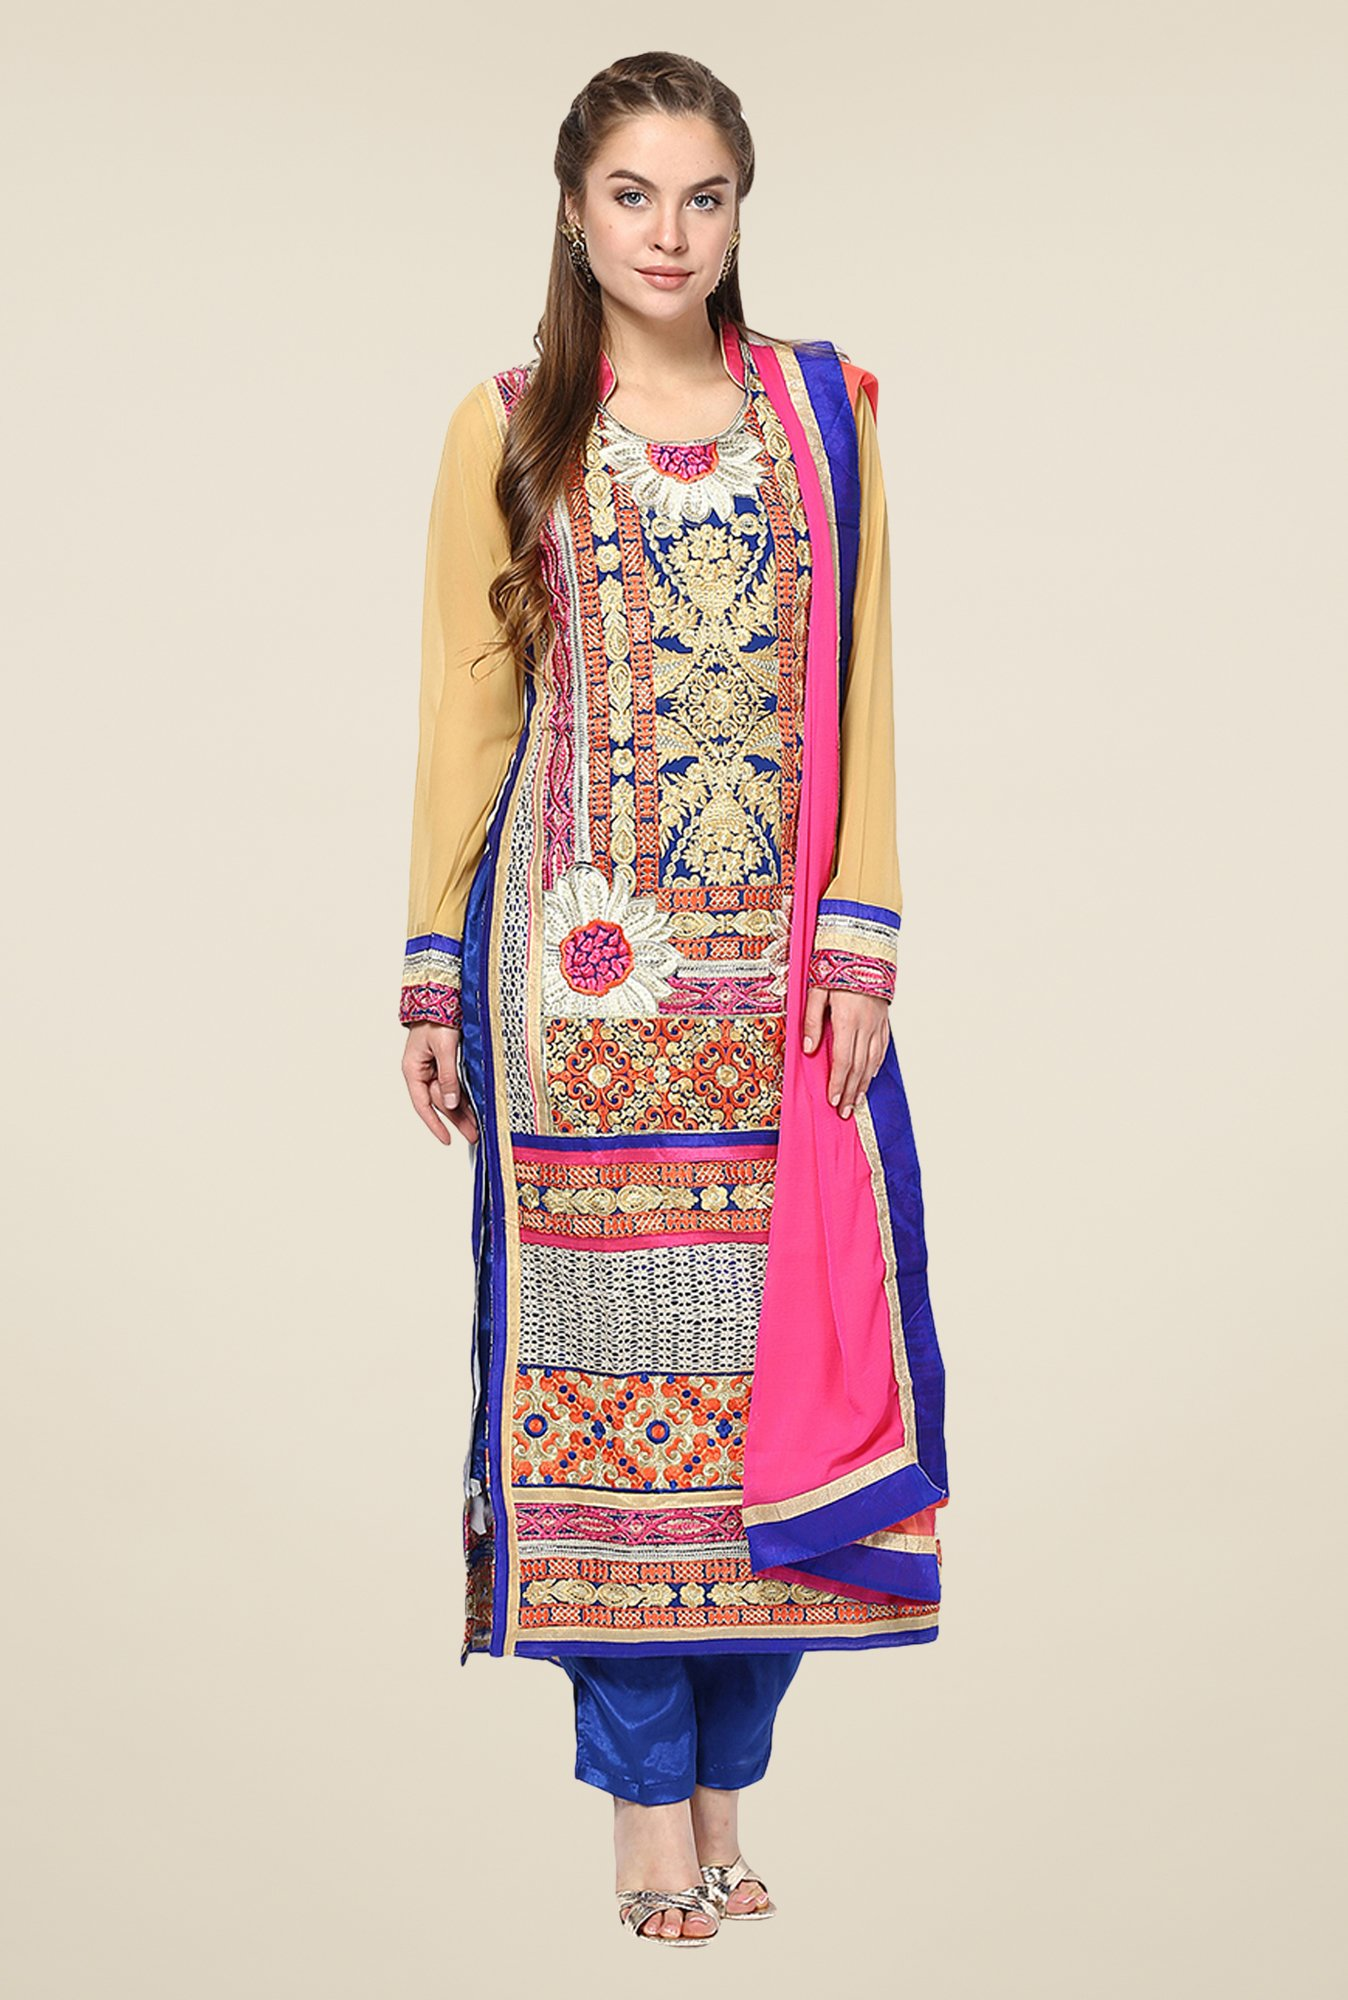 Yepme Raakel Blue Unstitched Suit Set